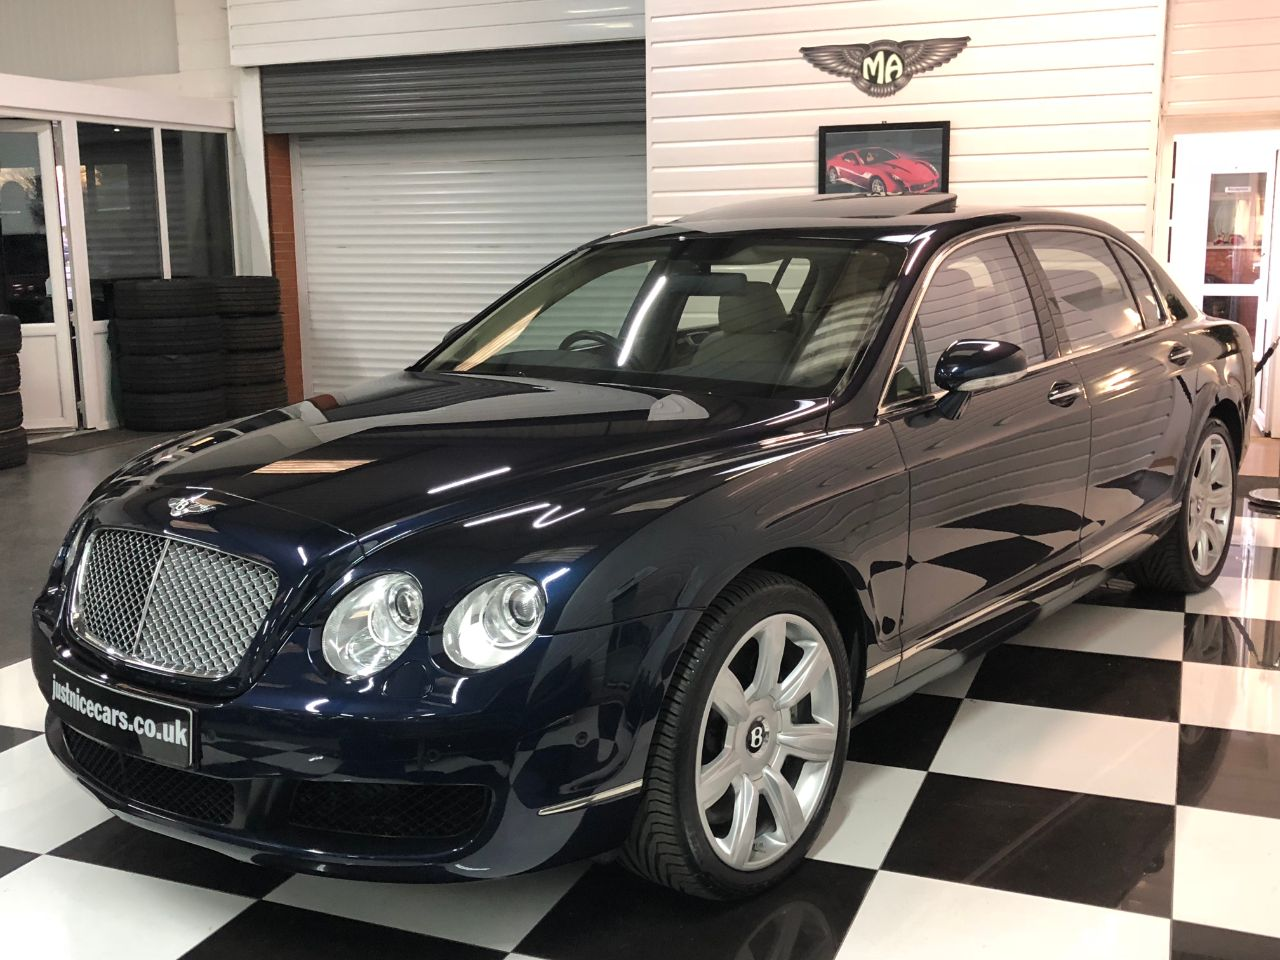 Bentley Continental Flying Spur 6.0 W12 4dr Auto~Sunroof~ Saloon Petrol Dark Sapphire Blue Metallic